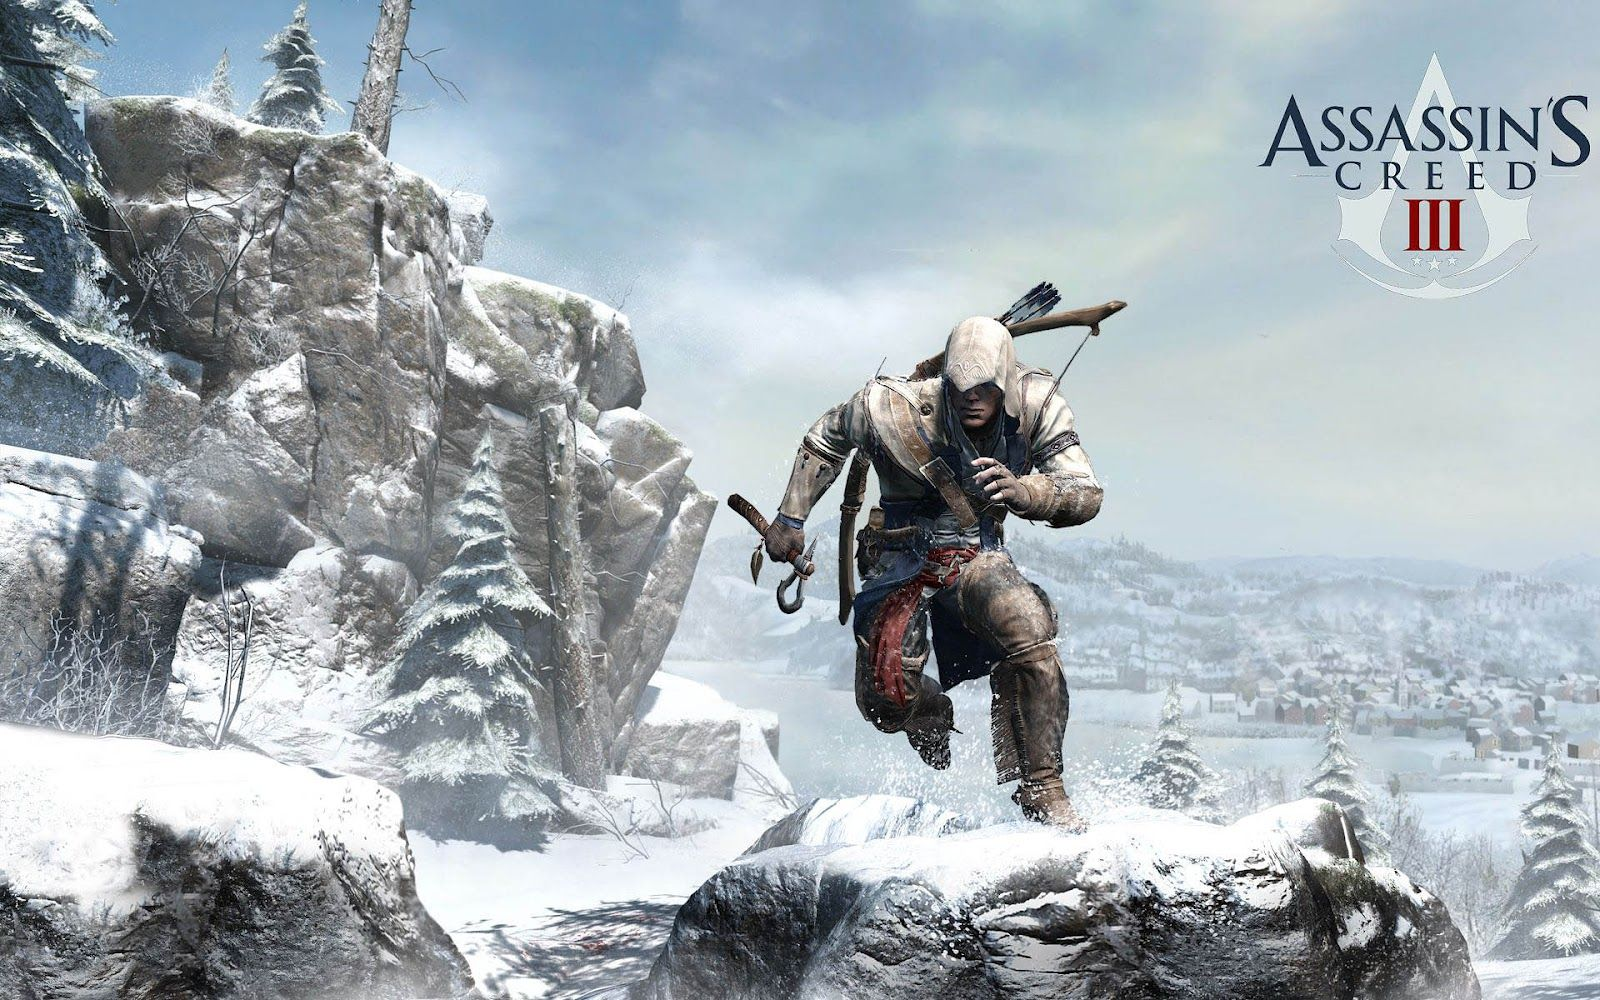 Game Assassins Creed Iii Wallpaper Assassins Creed Game